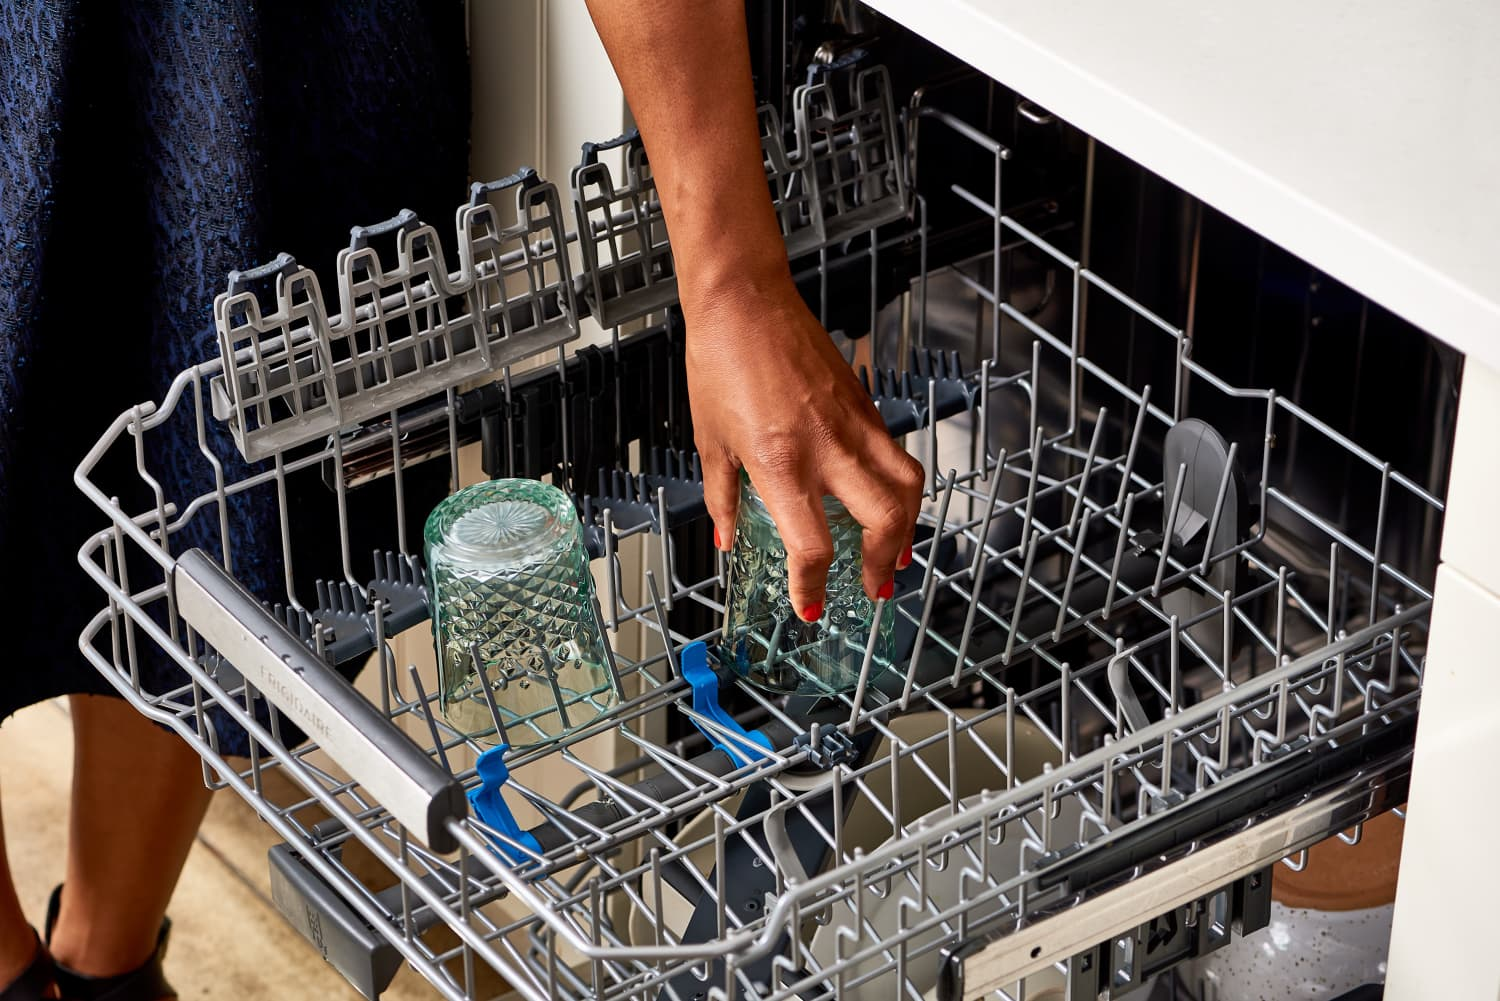 Do I Have to Clean My Dishwasher? (And Is It Bad I Never Have?)